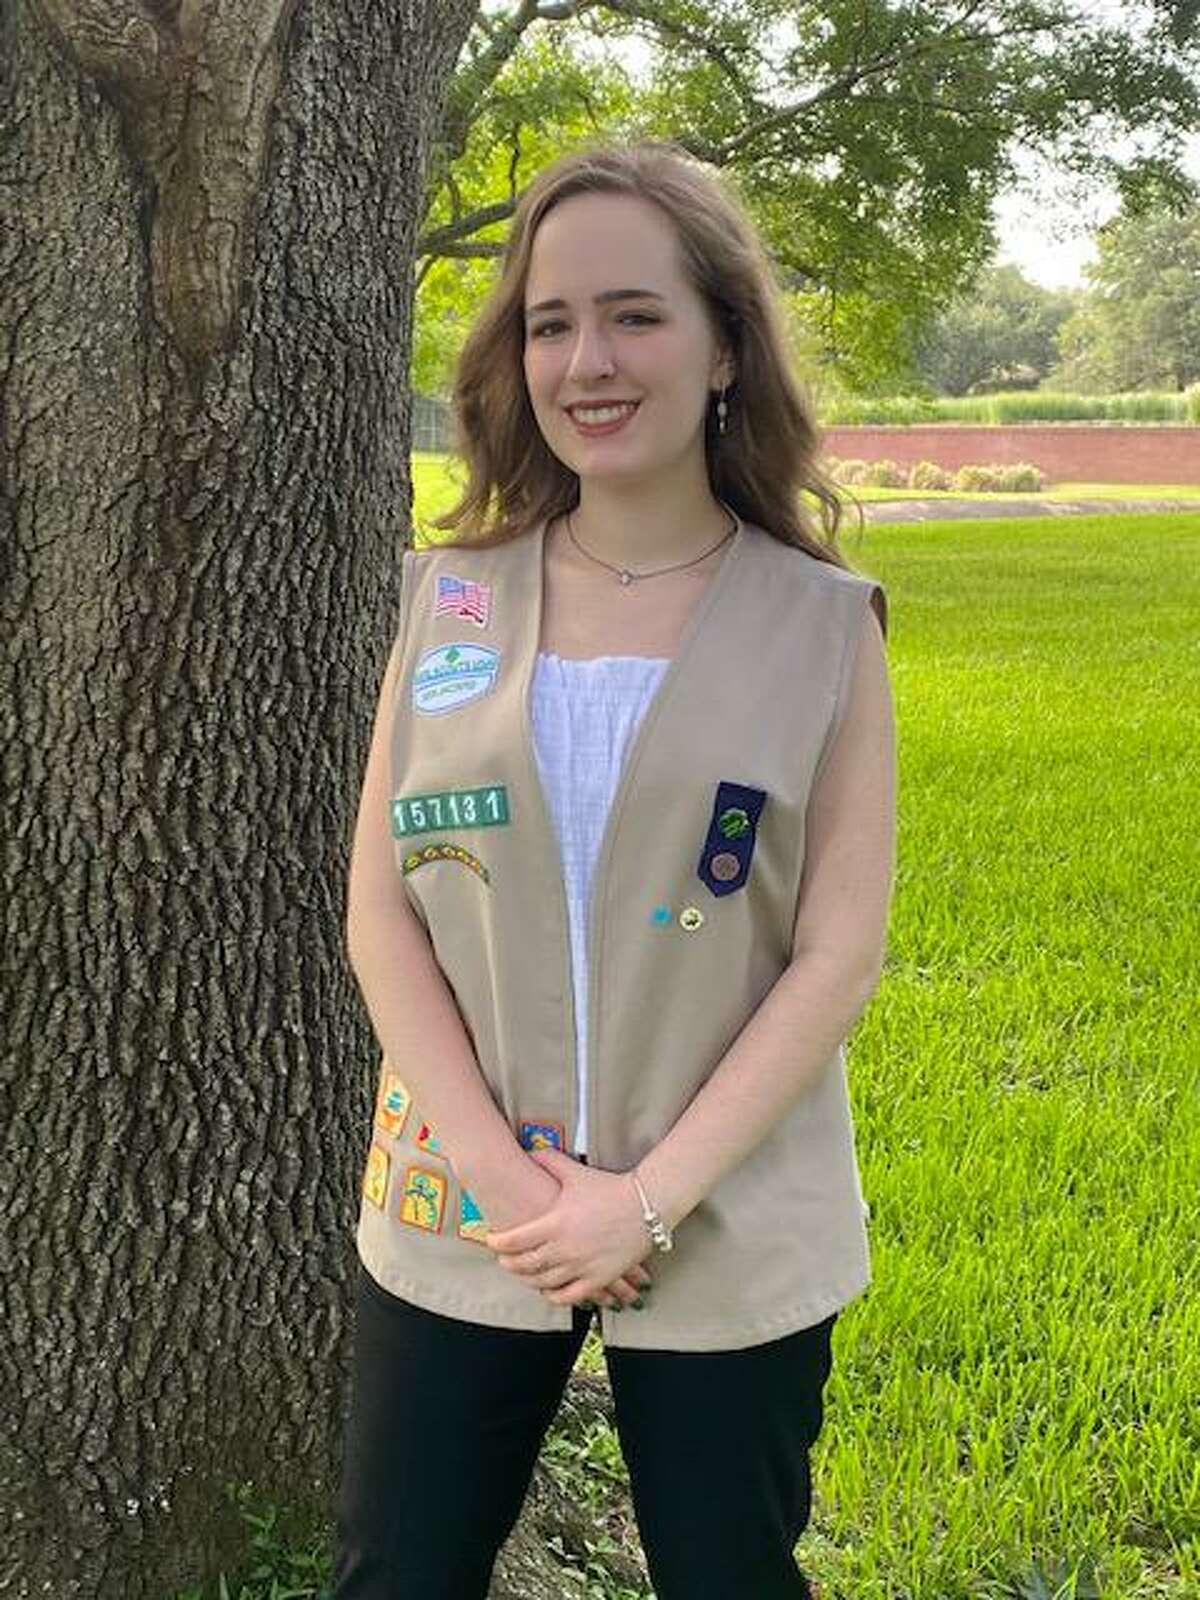 Clements High School senior Grace Dehner earned her Girl Scout Gold Award by forming a Model U.N. committee to examine issues that face women everywhere.